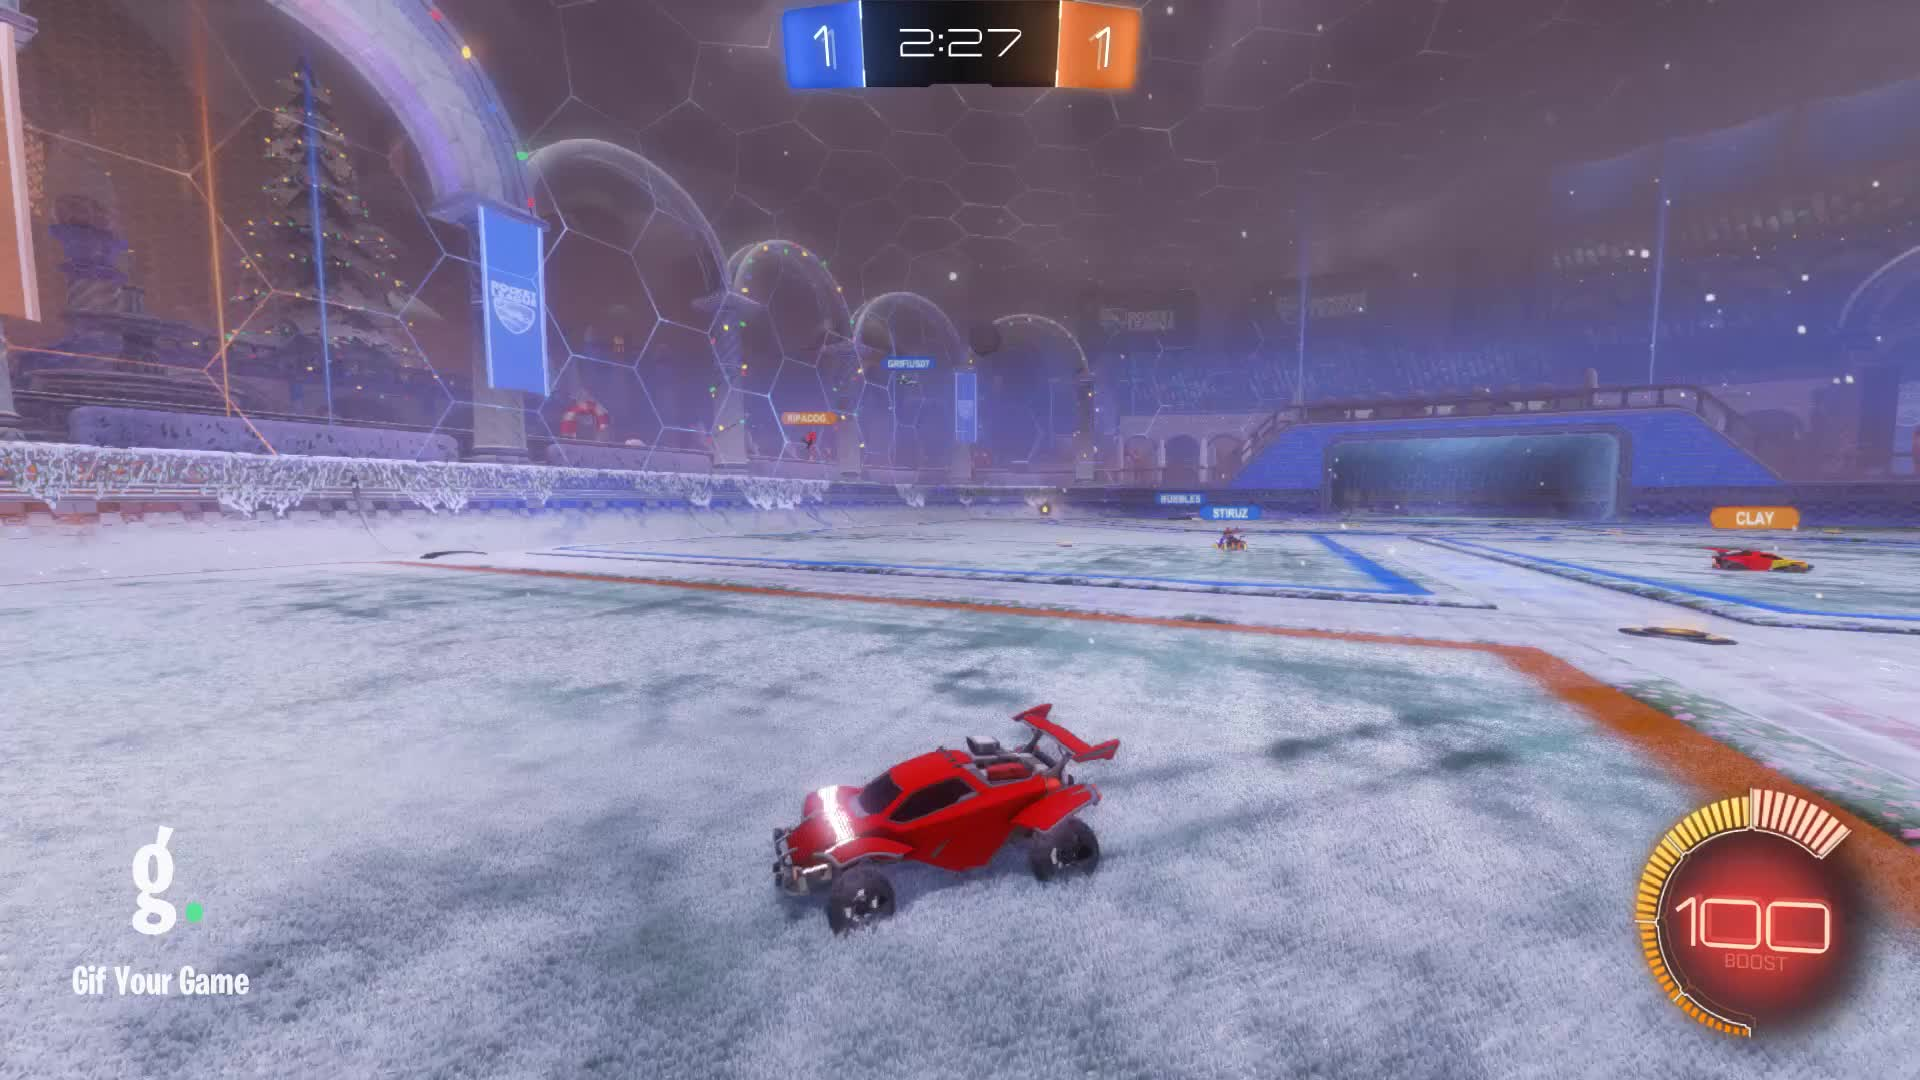 Gif Your Game, GifYourGame, Goal, Rocket League, RocketLeague, xTheBriggs, Goal 3: xTheBriggs GIFs